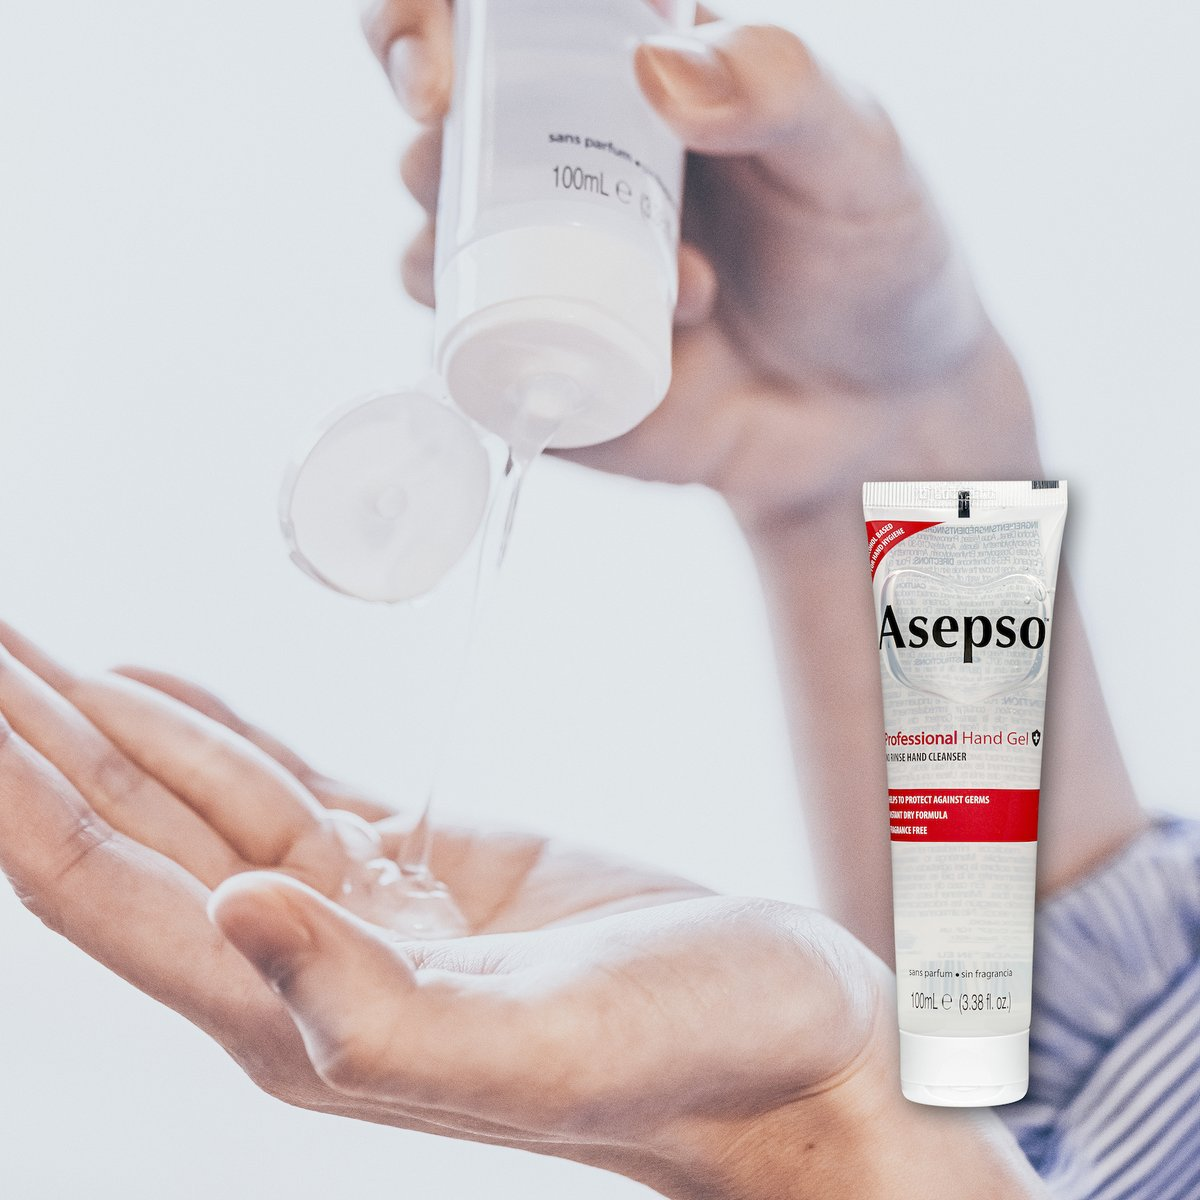 NEW Asepso Professional Hand gel #Asepso https://t.co/nRGYU8SFFZ